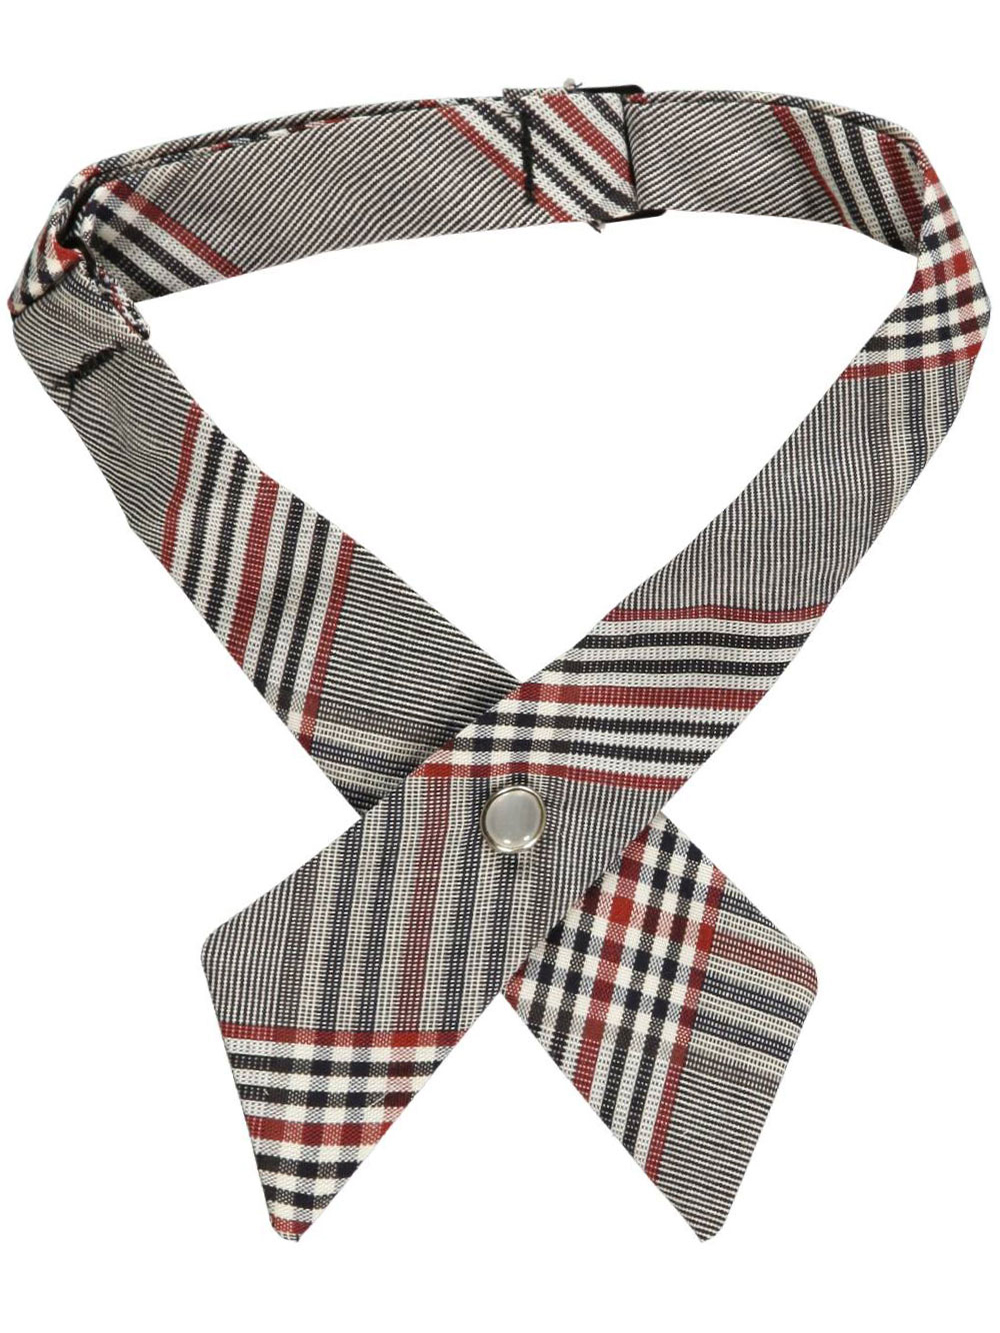 Plaid #91 Ties